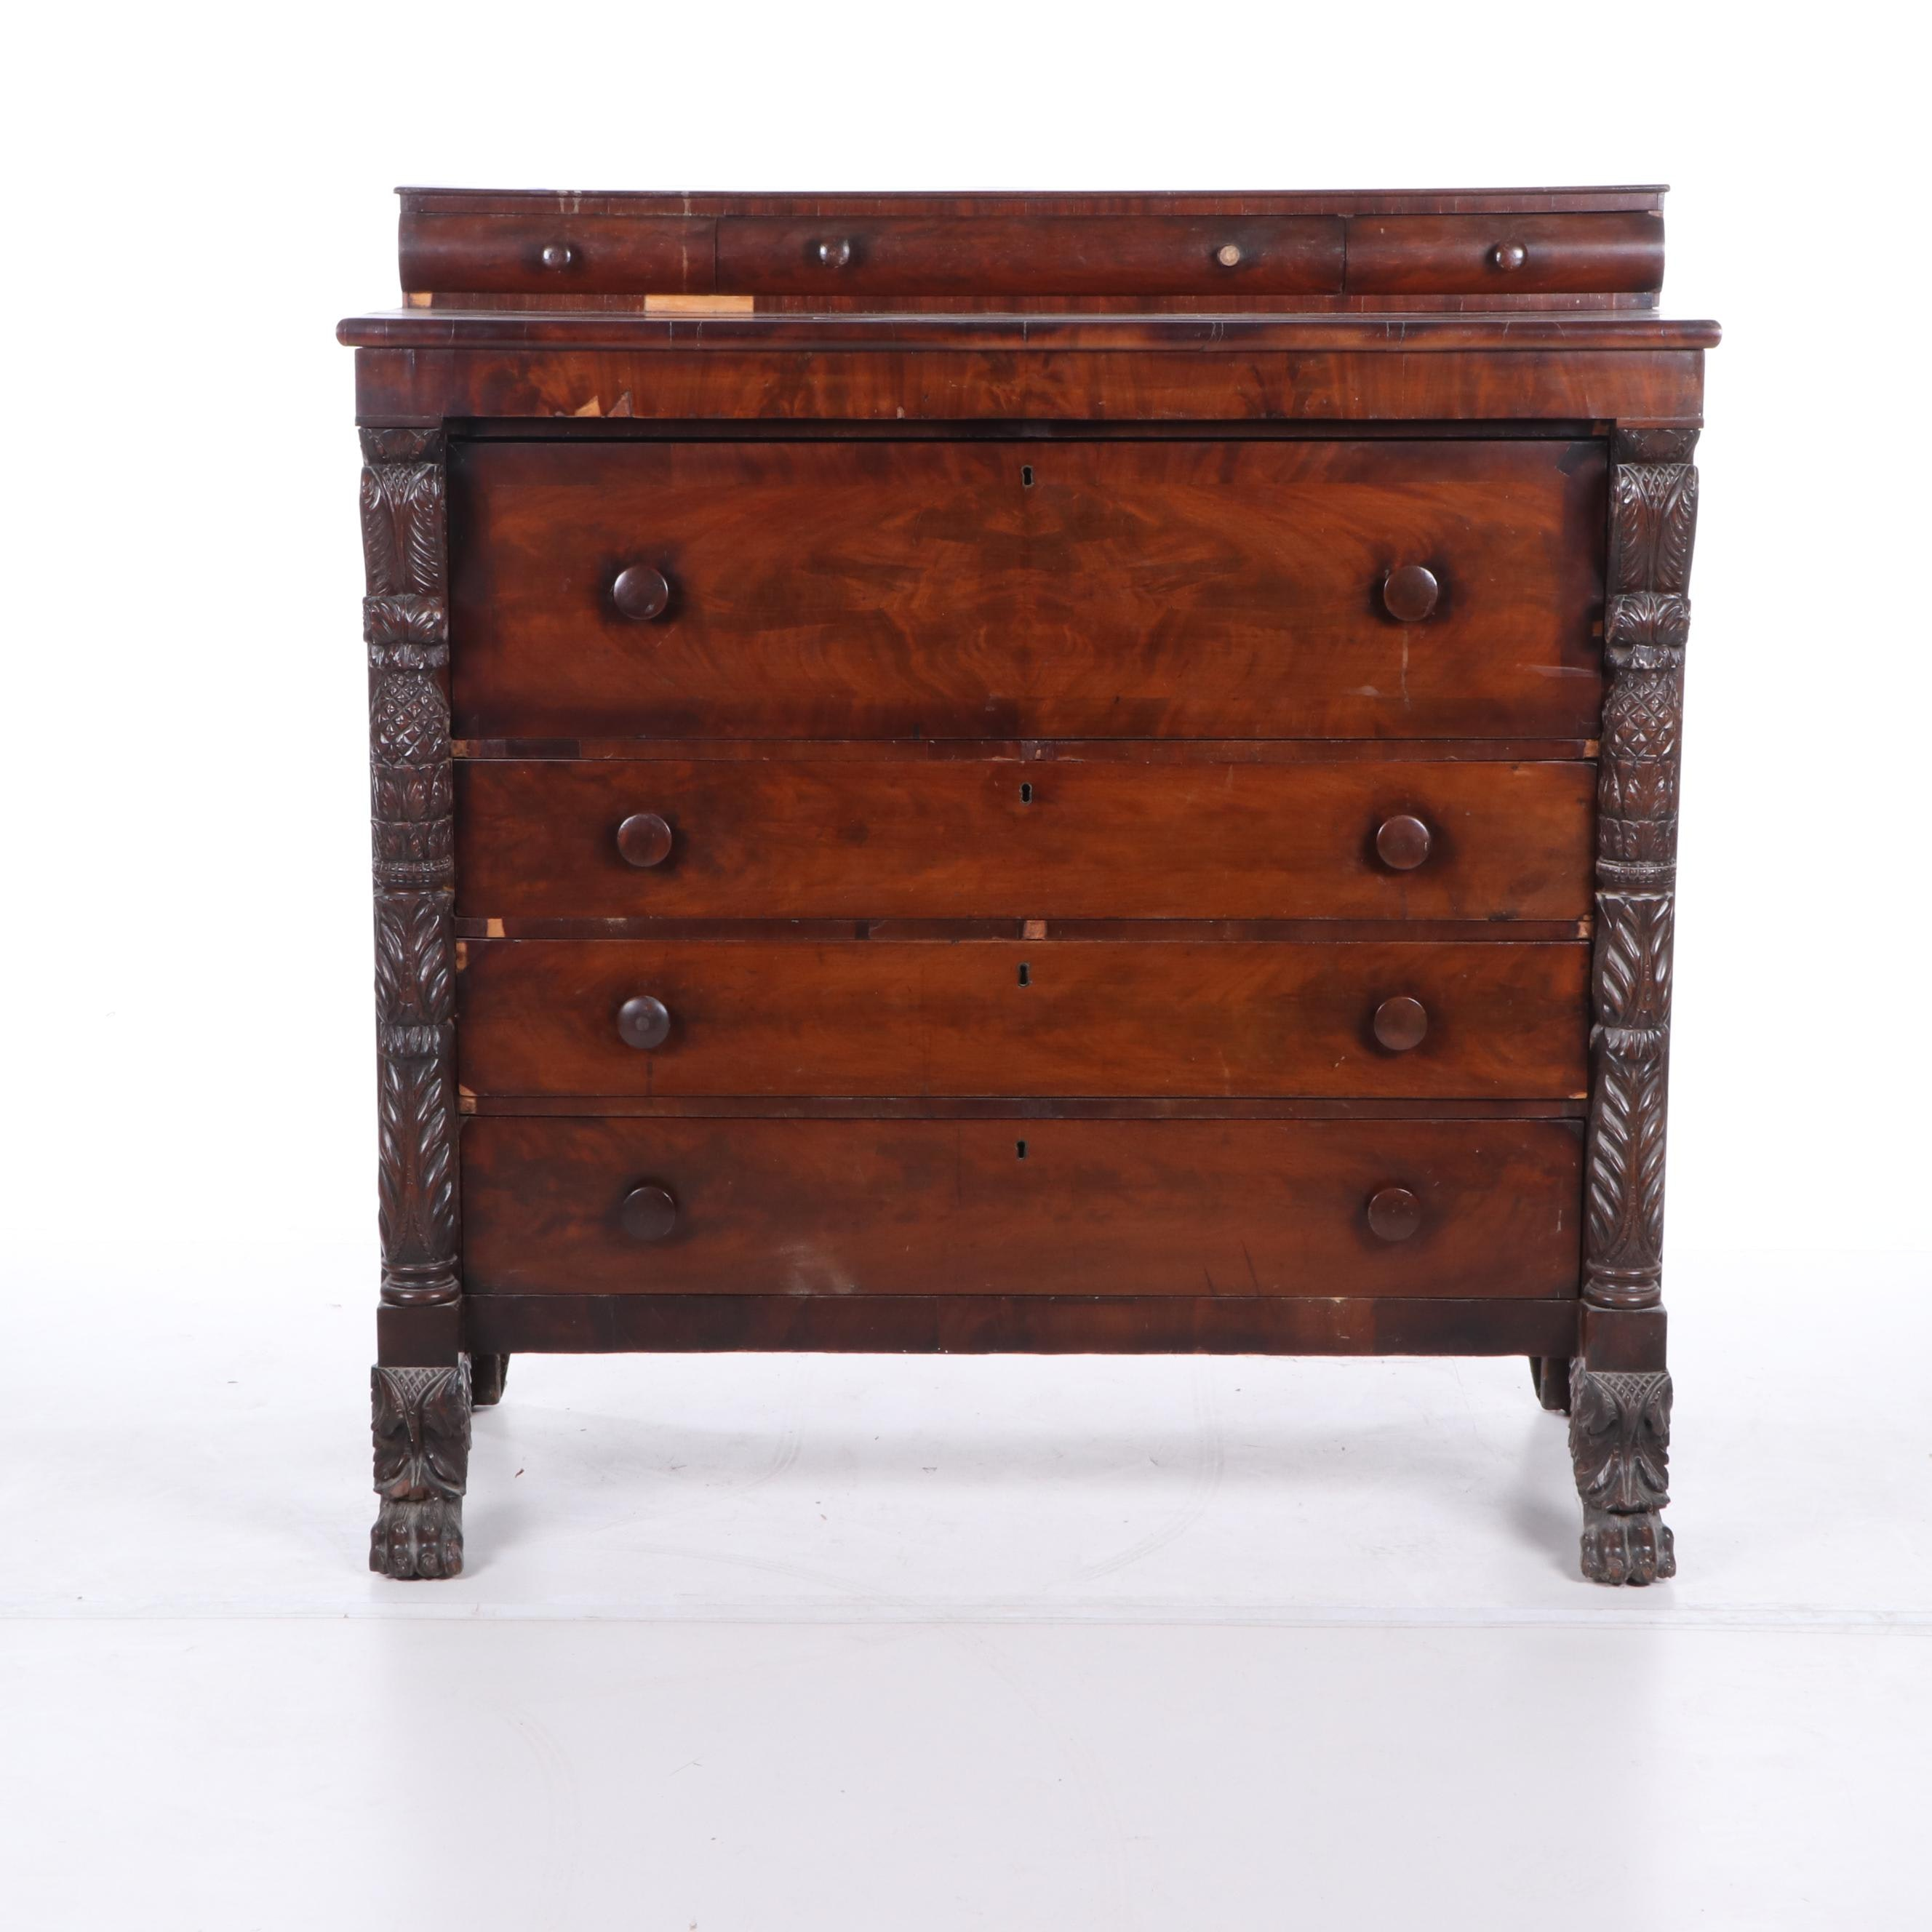 Empire Style Mahogany Chest of Drawers, Early to Mid 19th Century